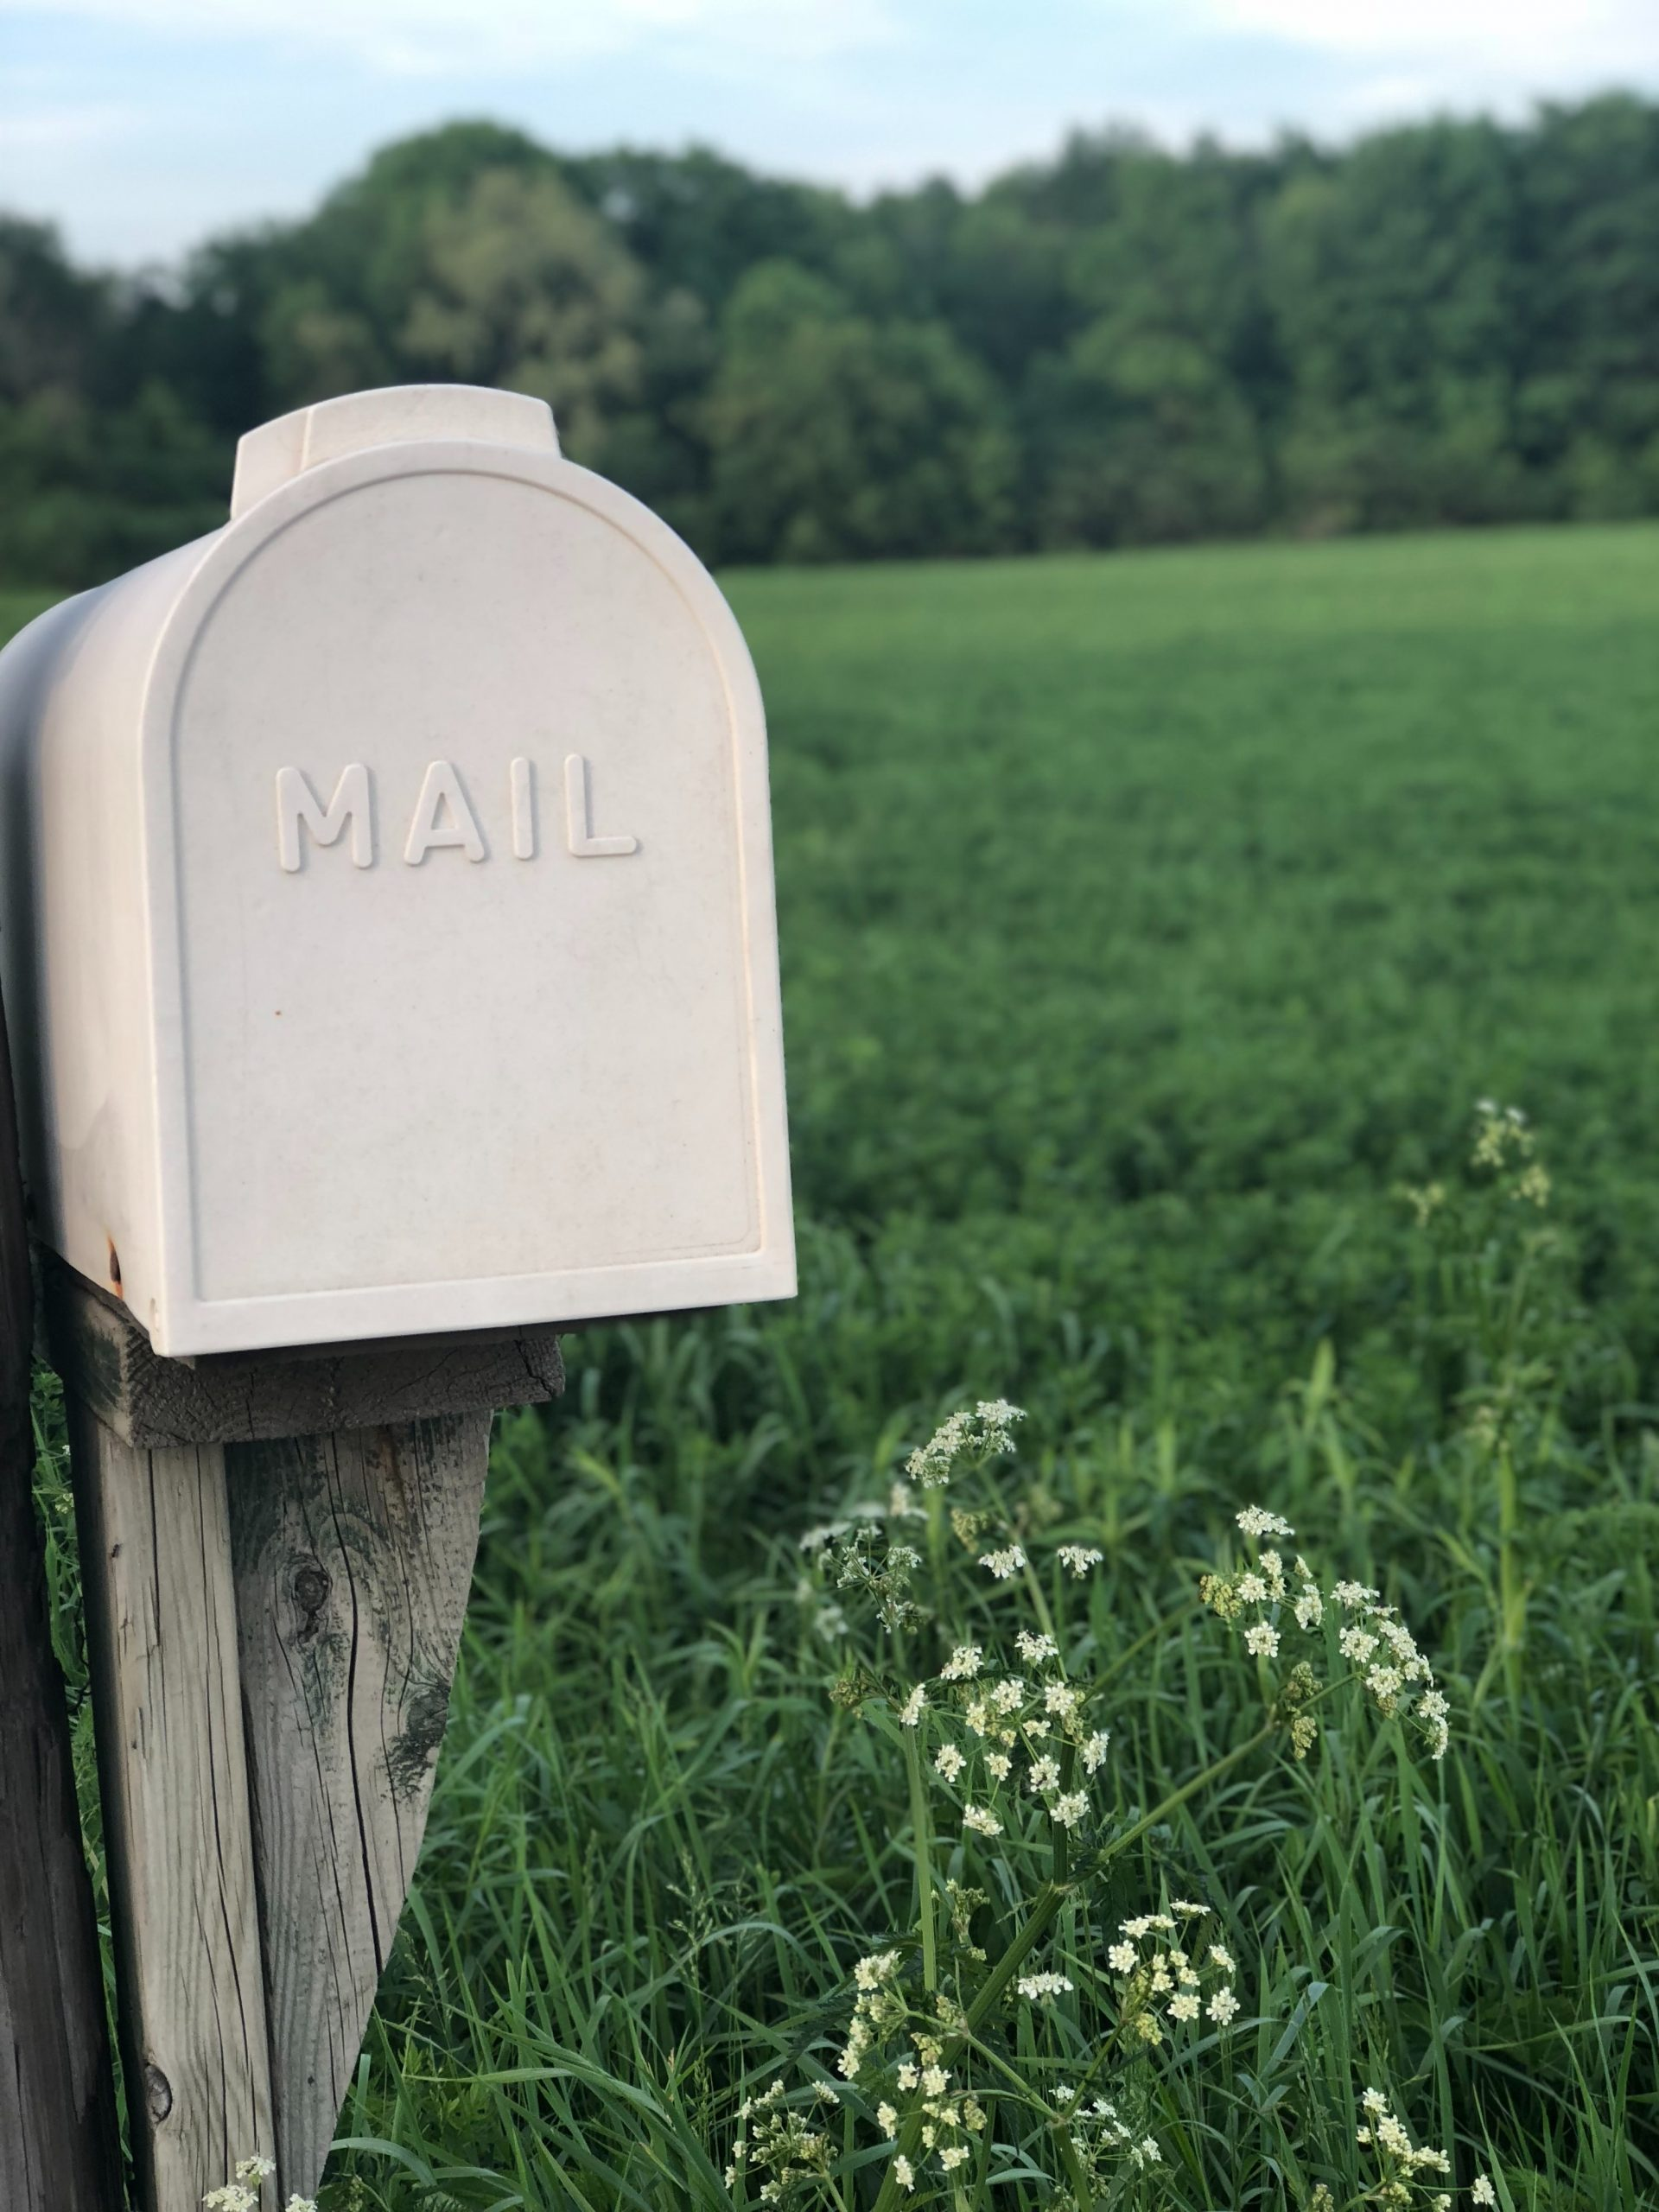 Mailbox - Photo by Mikaela Wiedenhoff